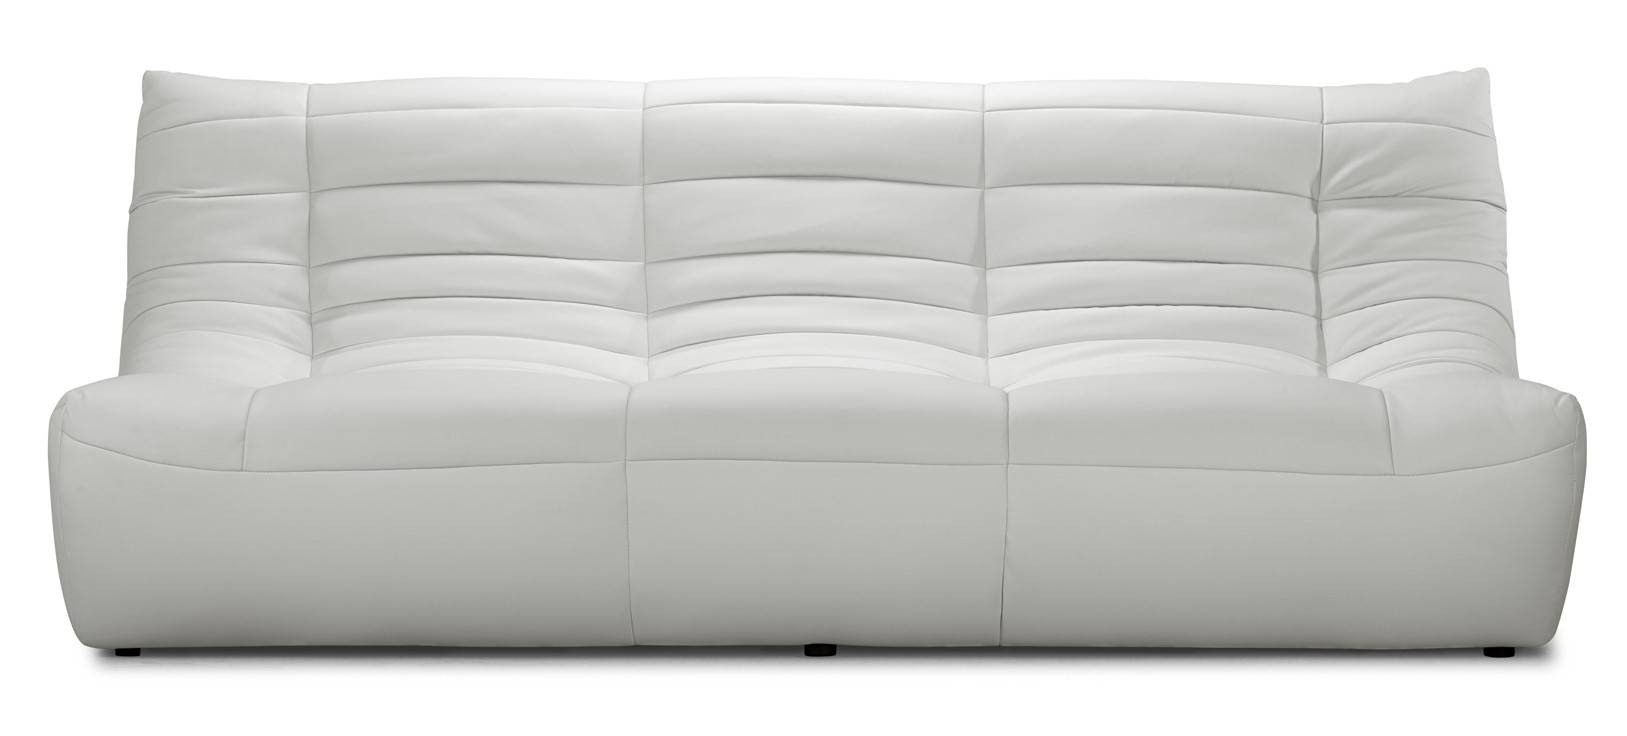 White Sofa. 1 11Jpg With White Sofa With Amazing Design. White with Long Modern Sofas (Image 30 of 30)